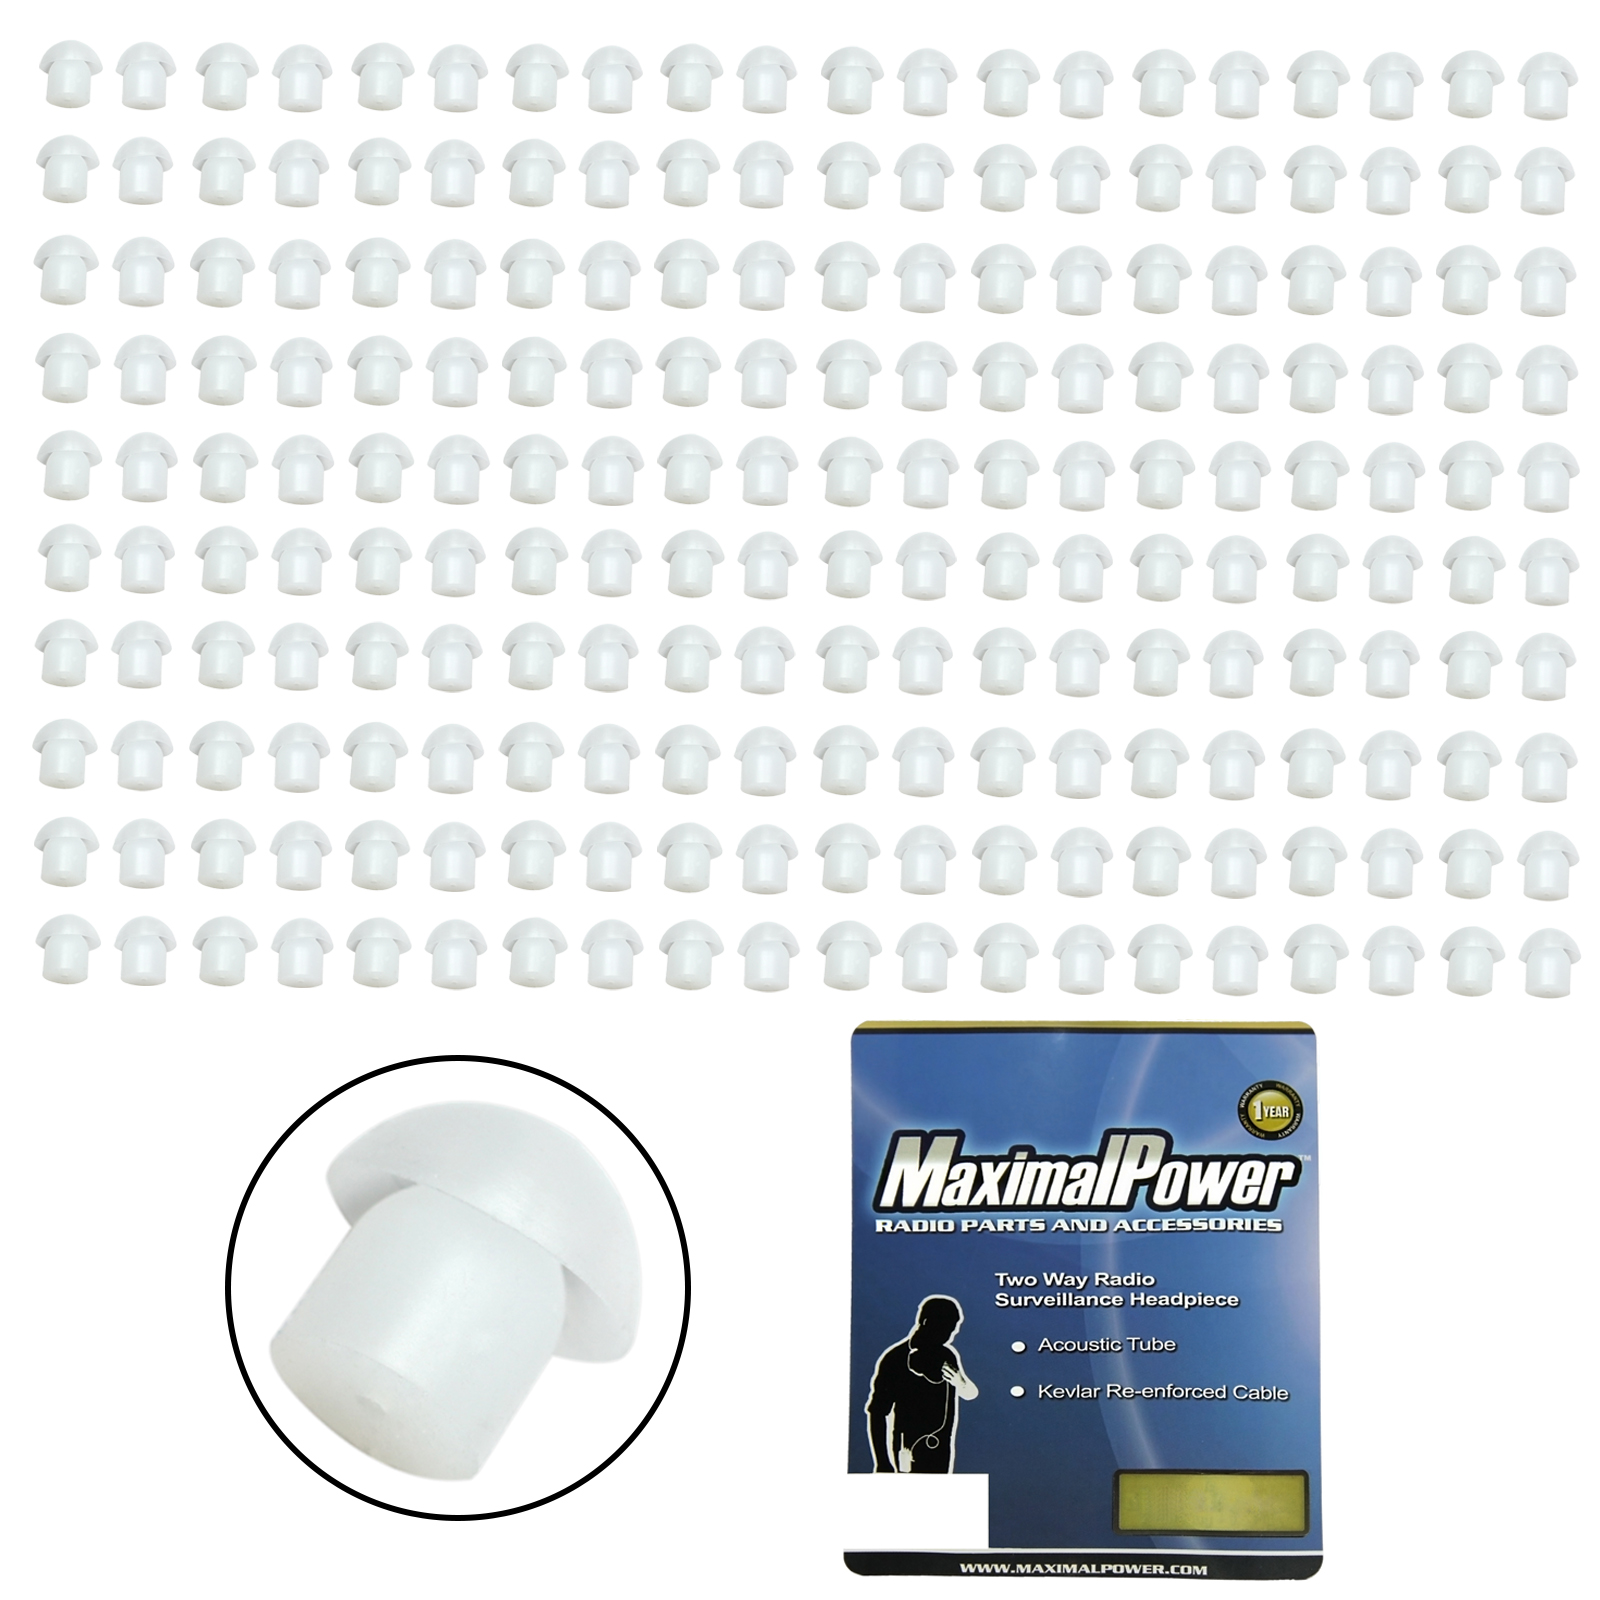 MaximalPower Clear Silicone Earpiece Ear Tip Motorola Kenwood Two-Way Radio - 200 Pack